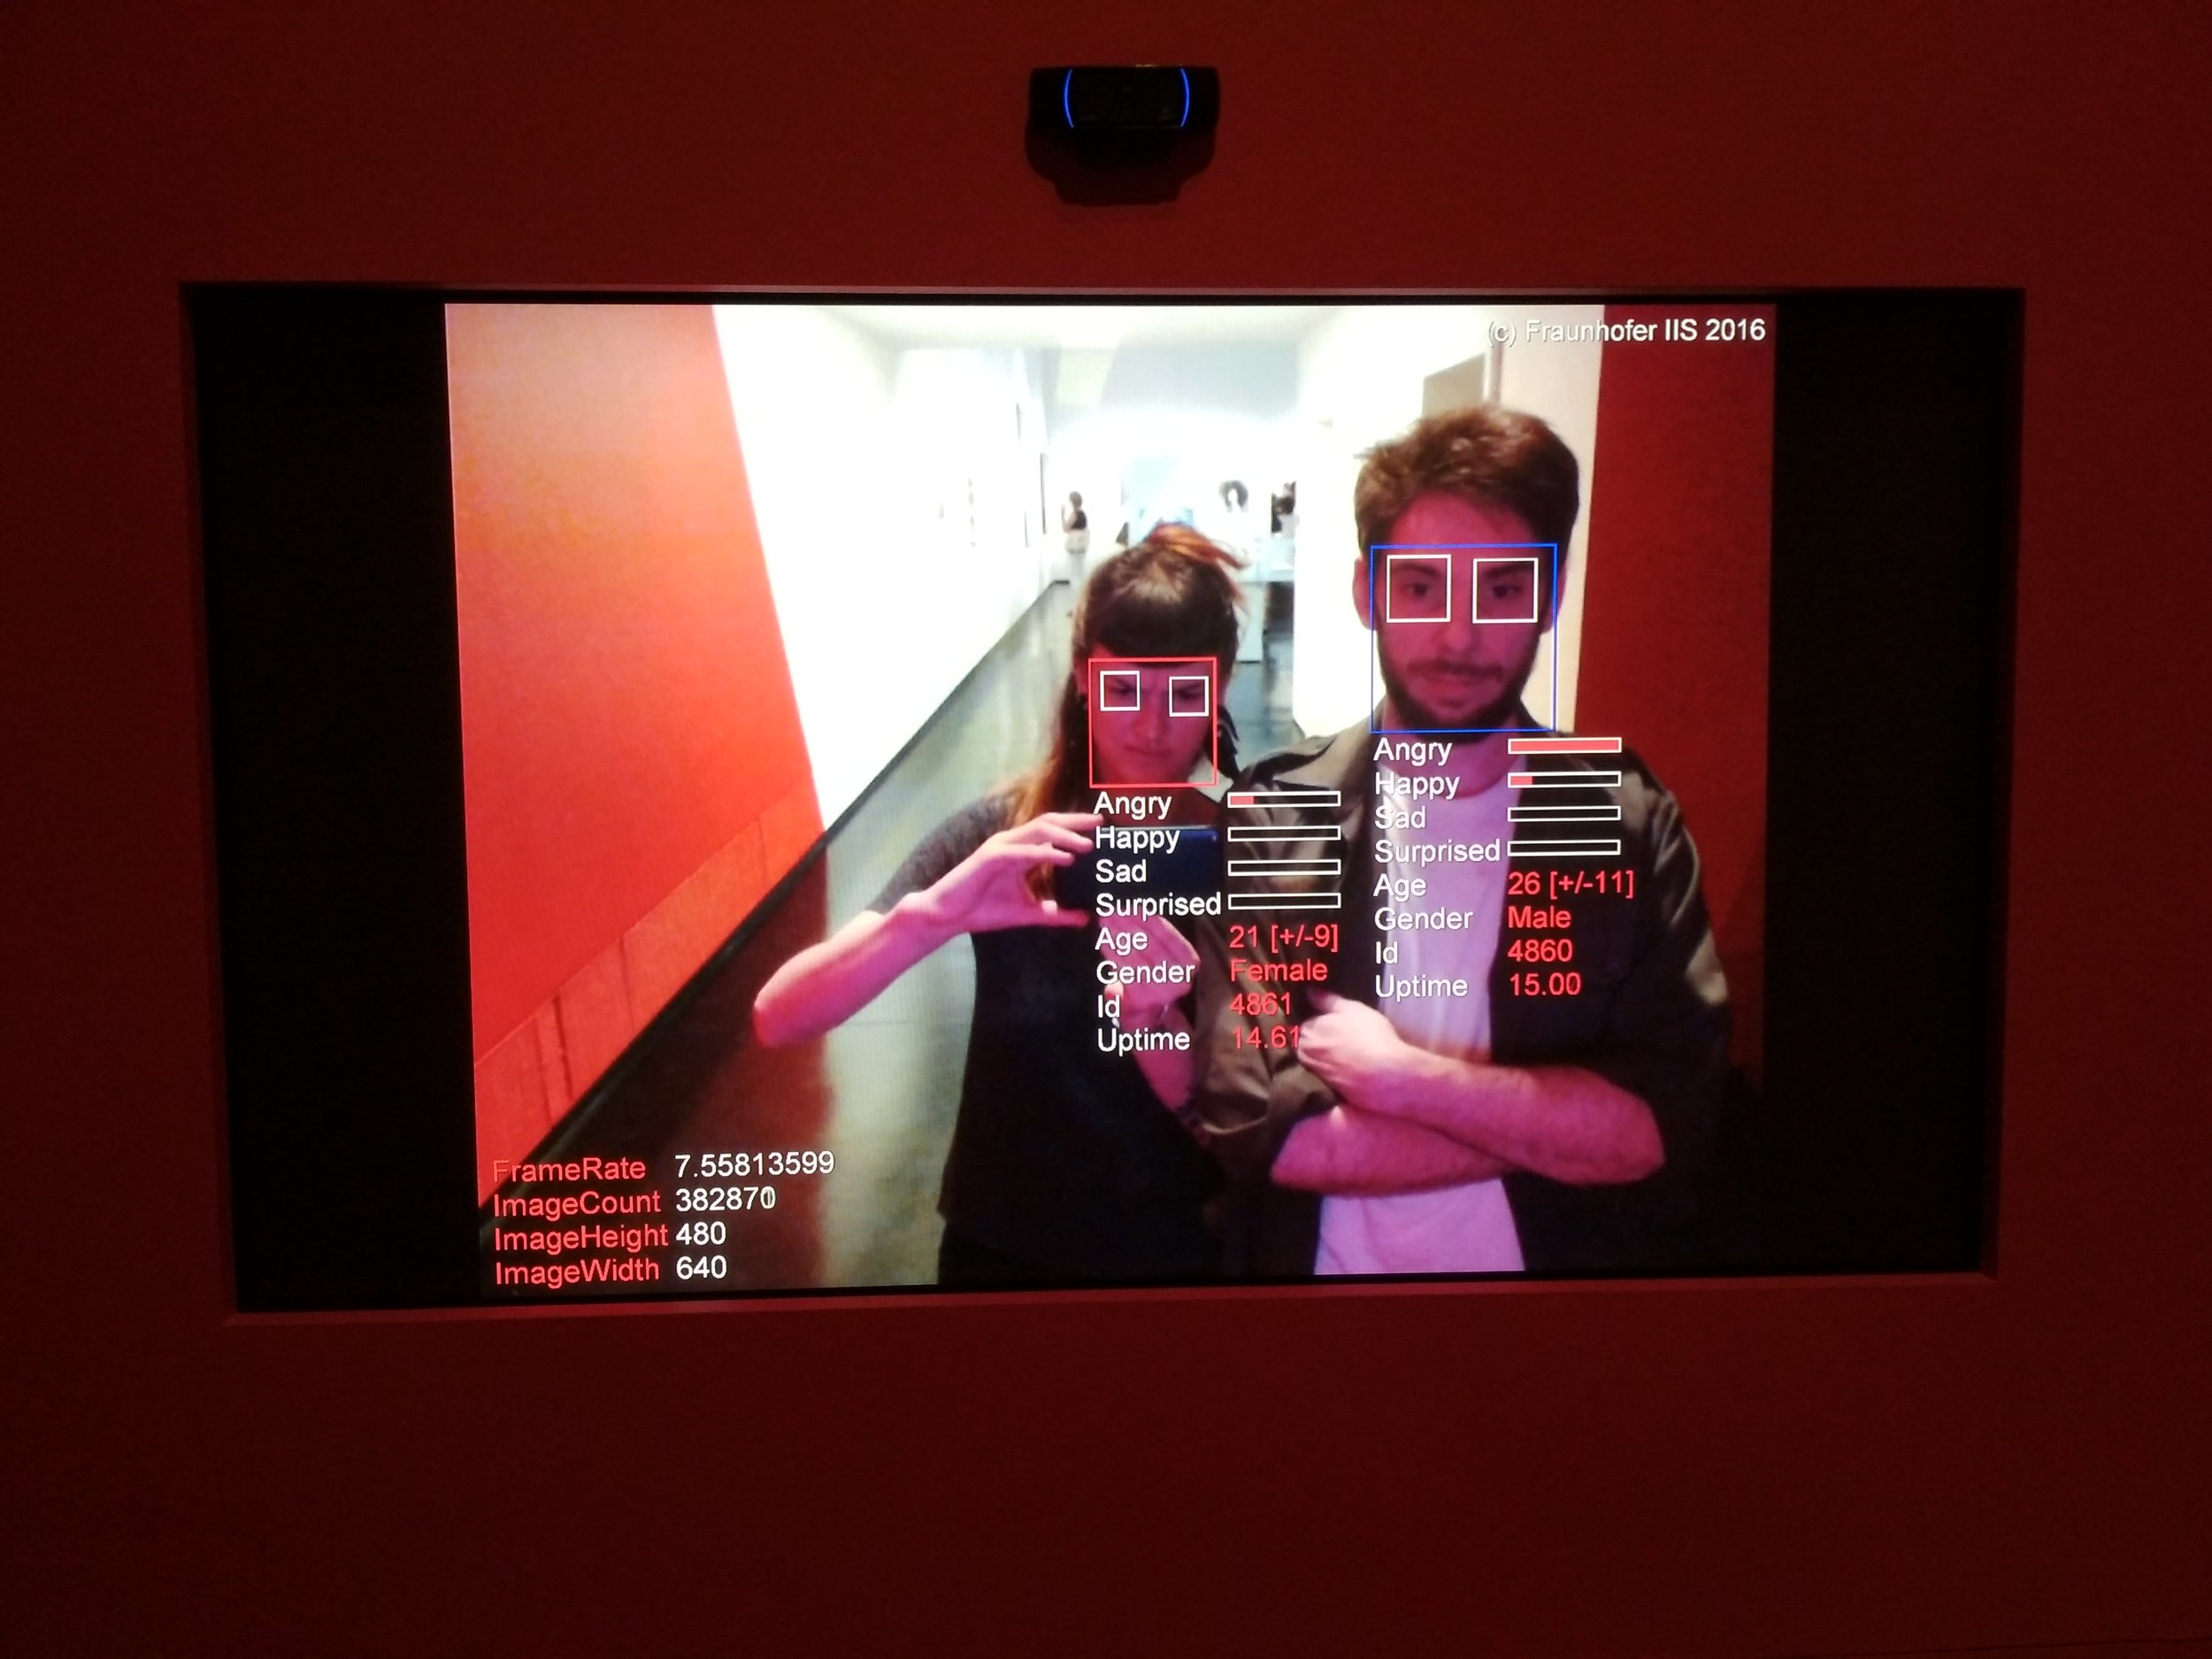 Facial recognition system- Nicole Scheller